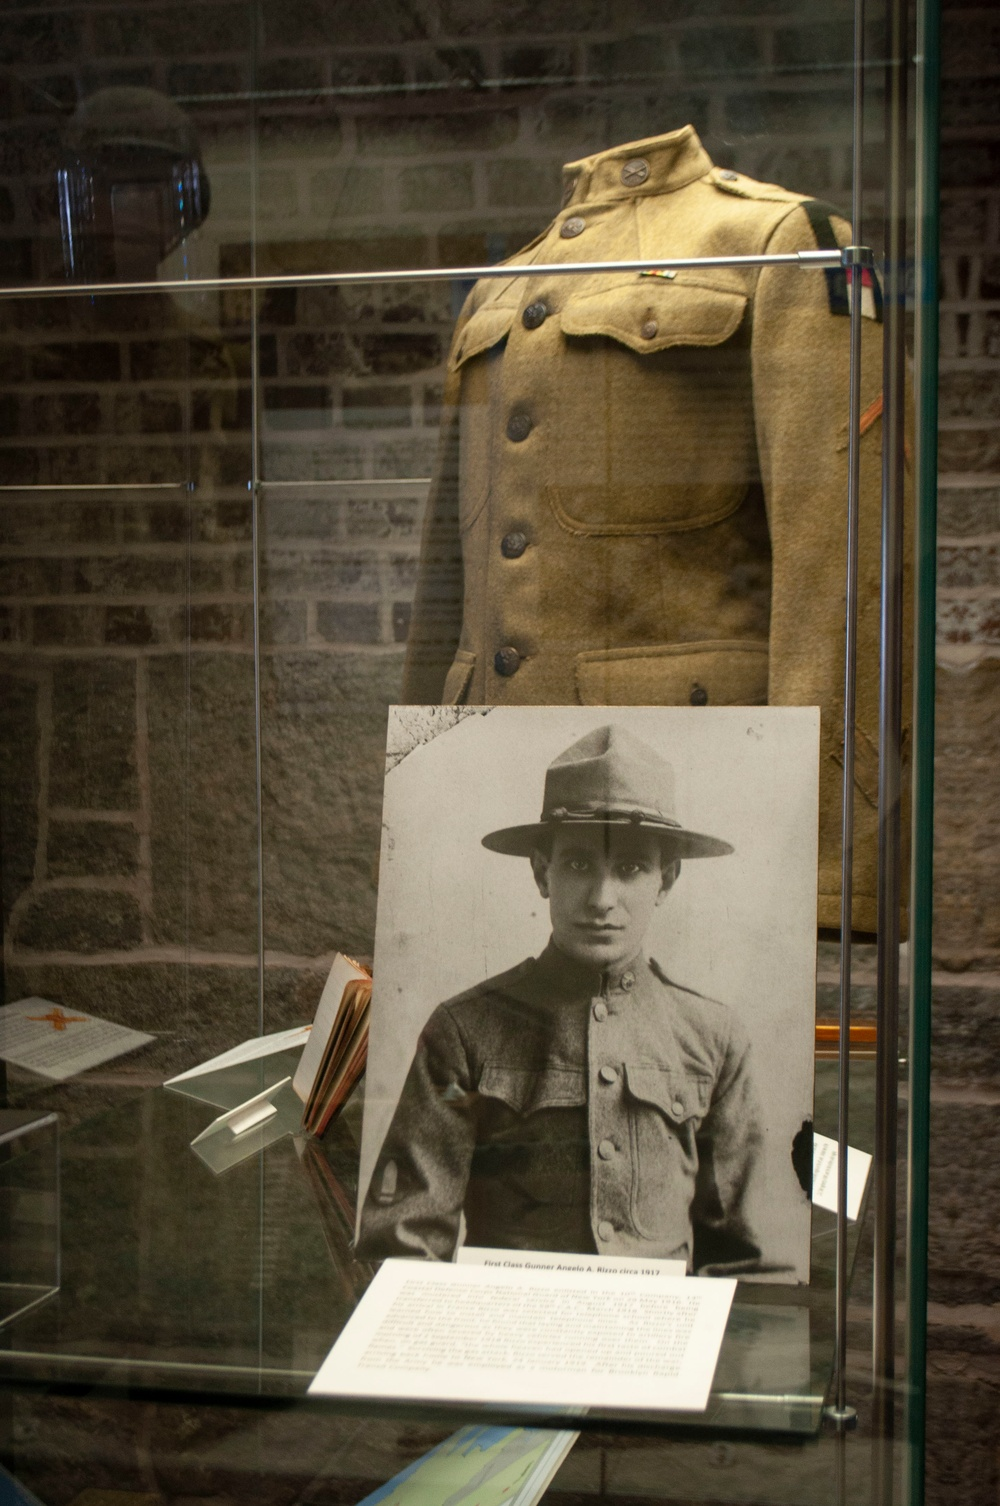 Fort Hamilton museum director relives New York WWI Soldier's journey